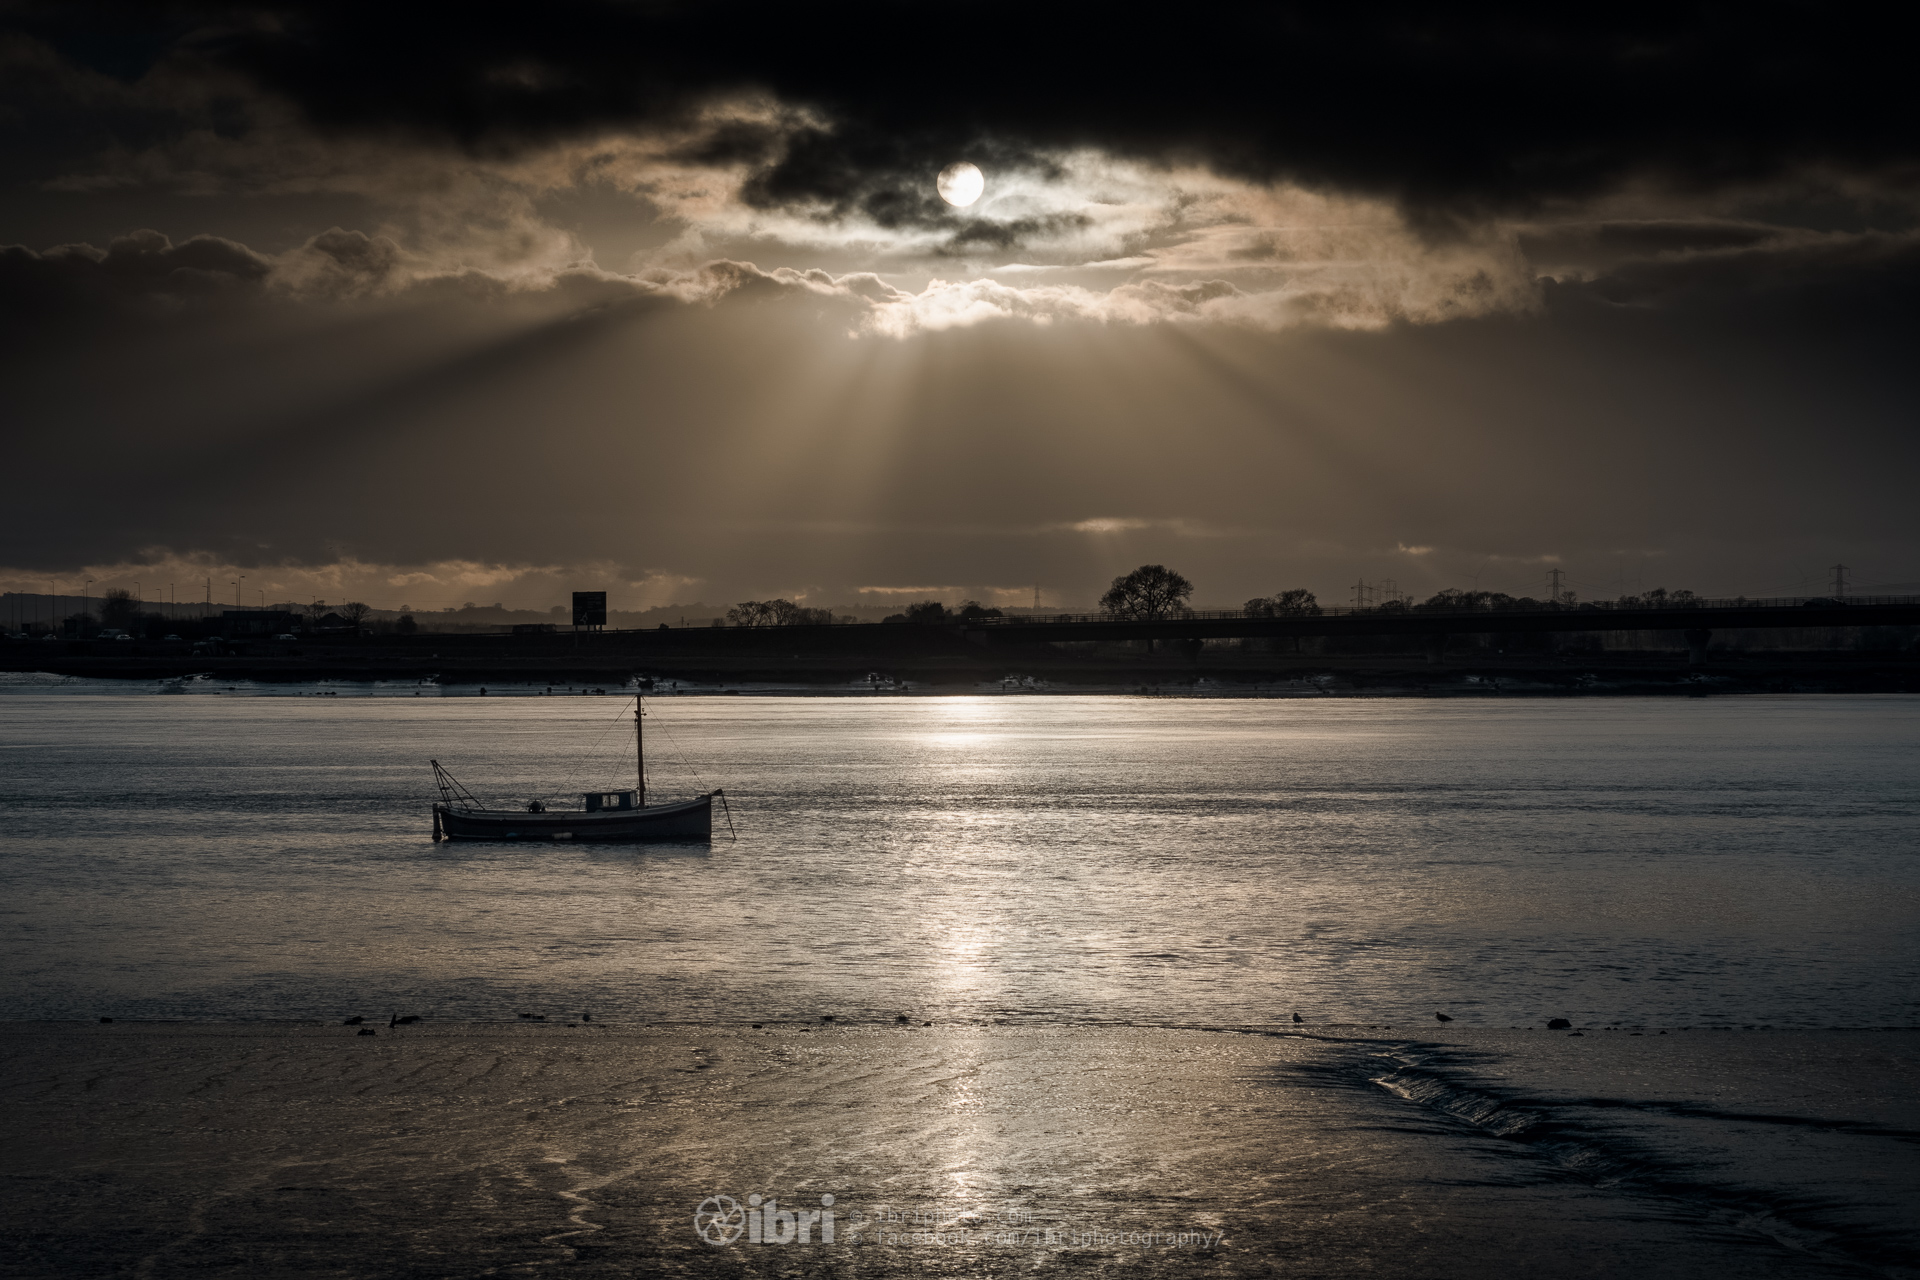 A bitterly cold afternoon for a walk between the Kincardine and Clackmannanshire Bridges, despite the sunshine. The tide had turned this boat directly up-river as the sun peeked out below the clouds. Impressed with the dynamic range captured through the camera in this shot.   Shot with my favourite piece of old glass.Sony A6500 - Minolta MD Rokkor 50mm 1:1.7 - 50mm - 1/4000 sec - f11.0. RAW Processed in Lightroom and Photoshop - 2 exposures combined - 0EV & +2EV